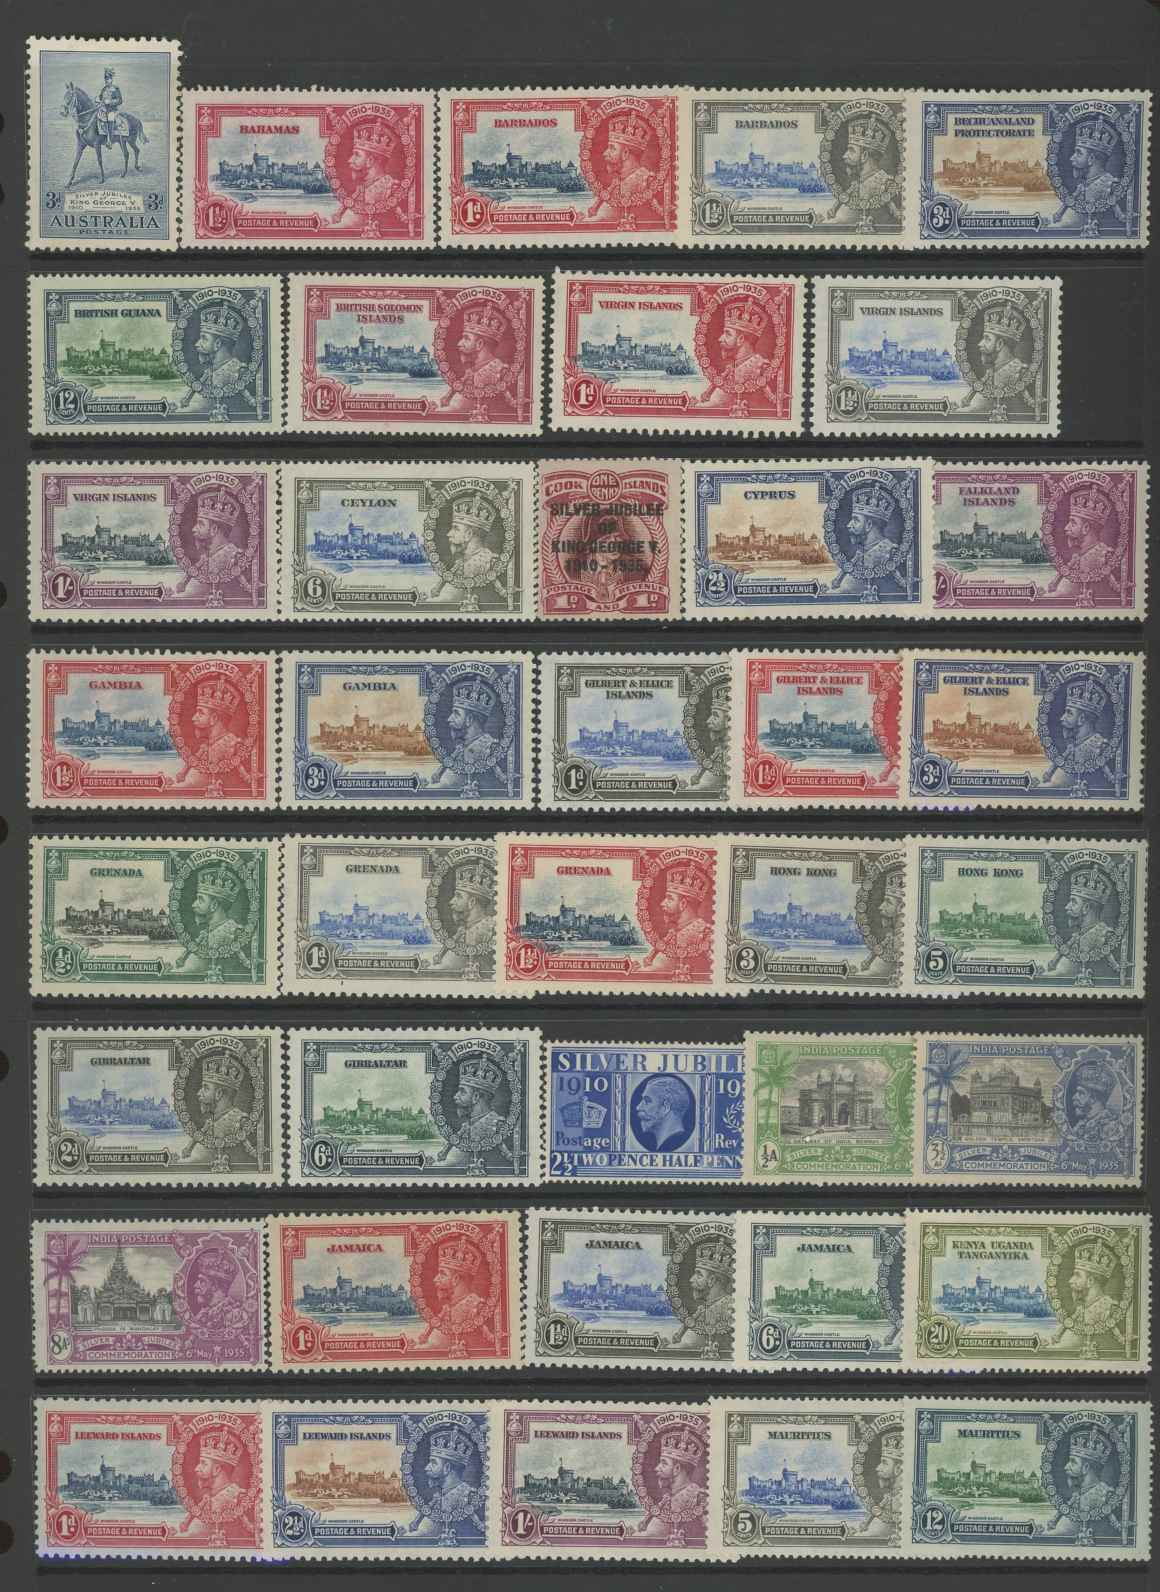 1935 Silver Jubilee odd values to 1/- Mint on Hagner sheets.